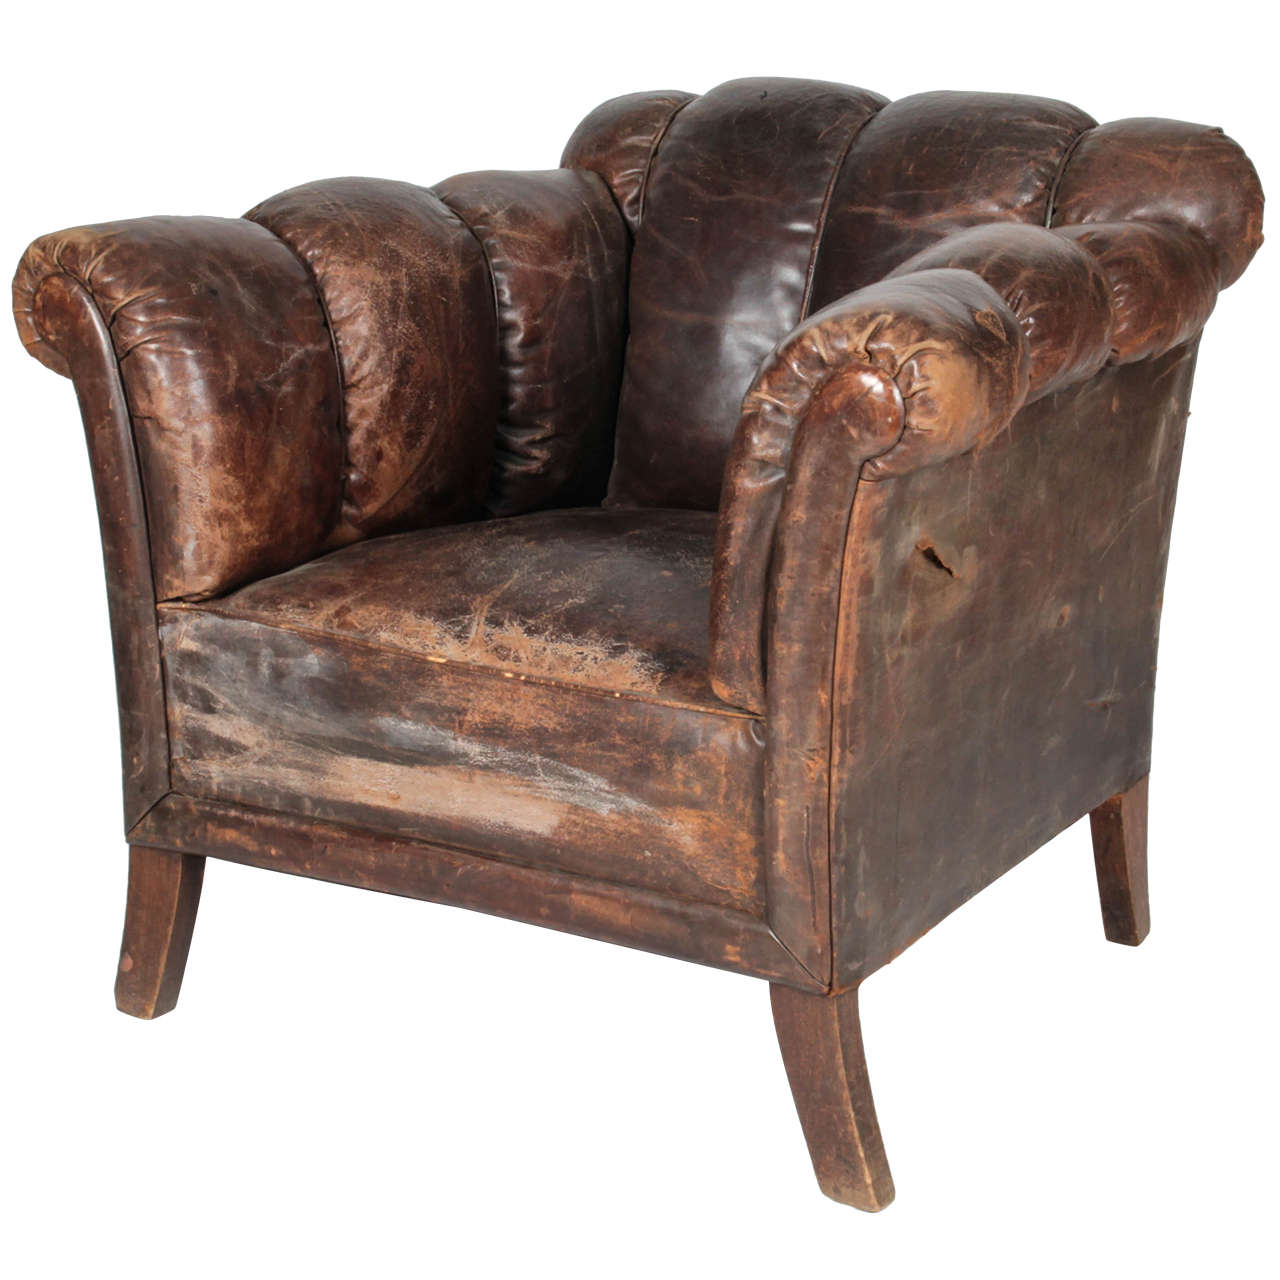 Boon High Chair Sale 20th Century Distressed Vertical Tufted Leather Club